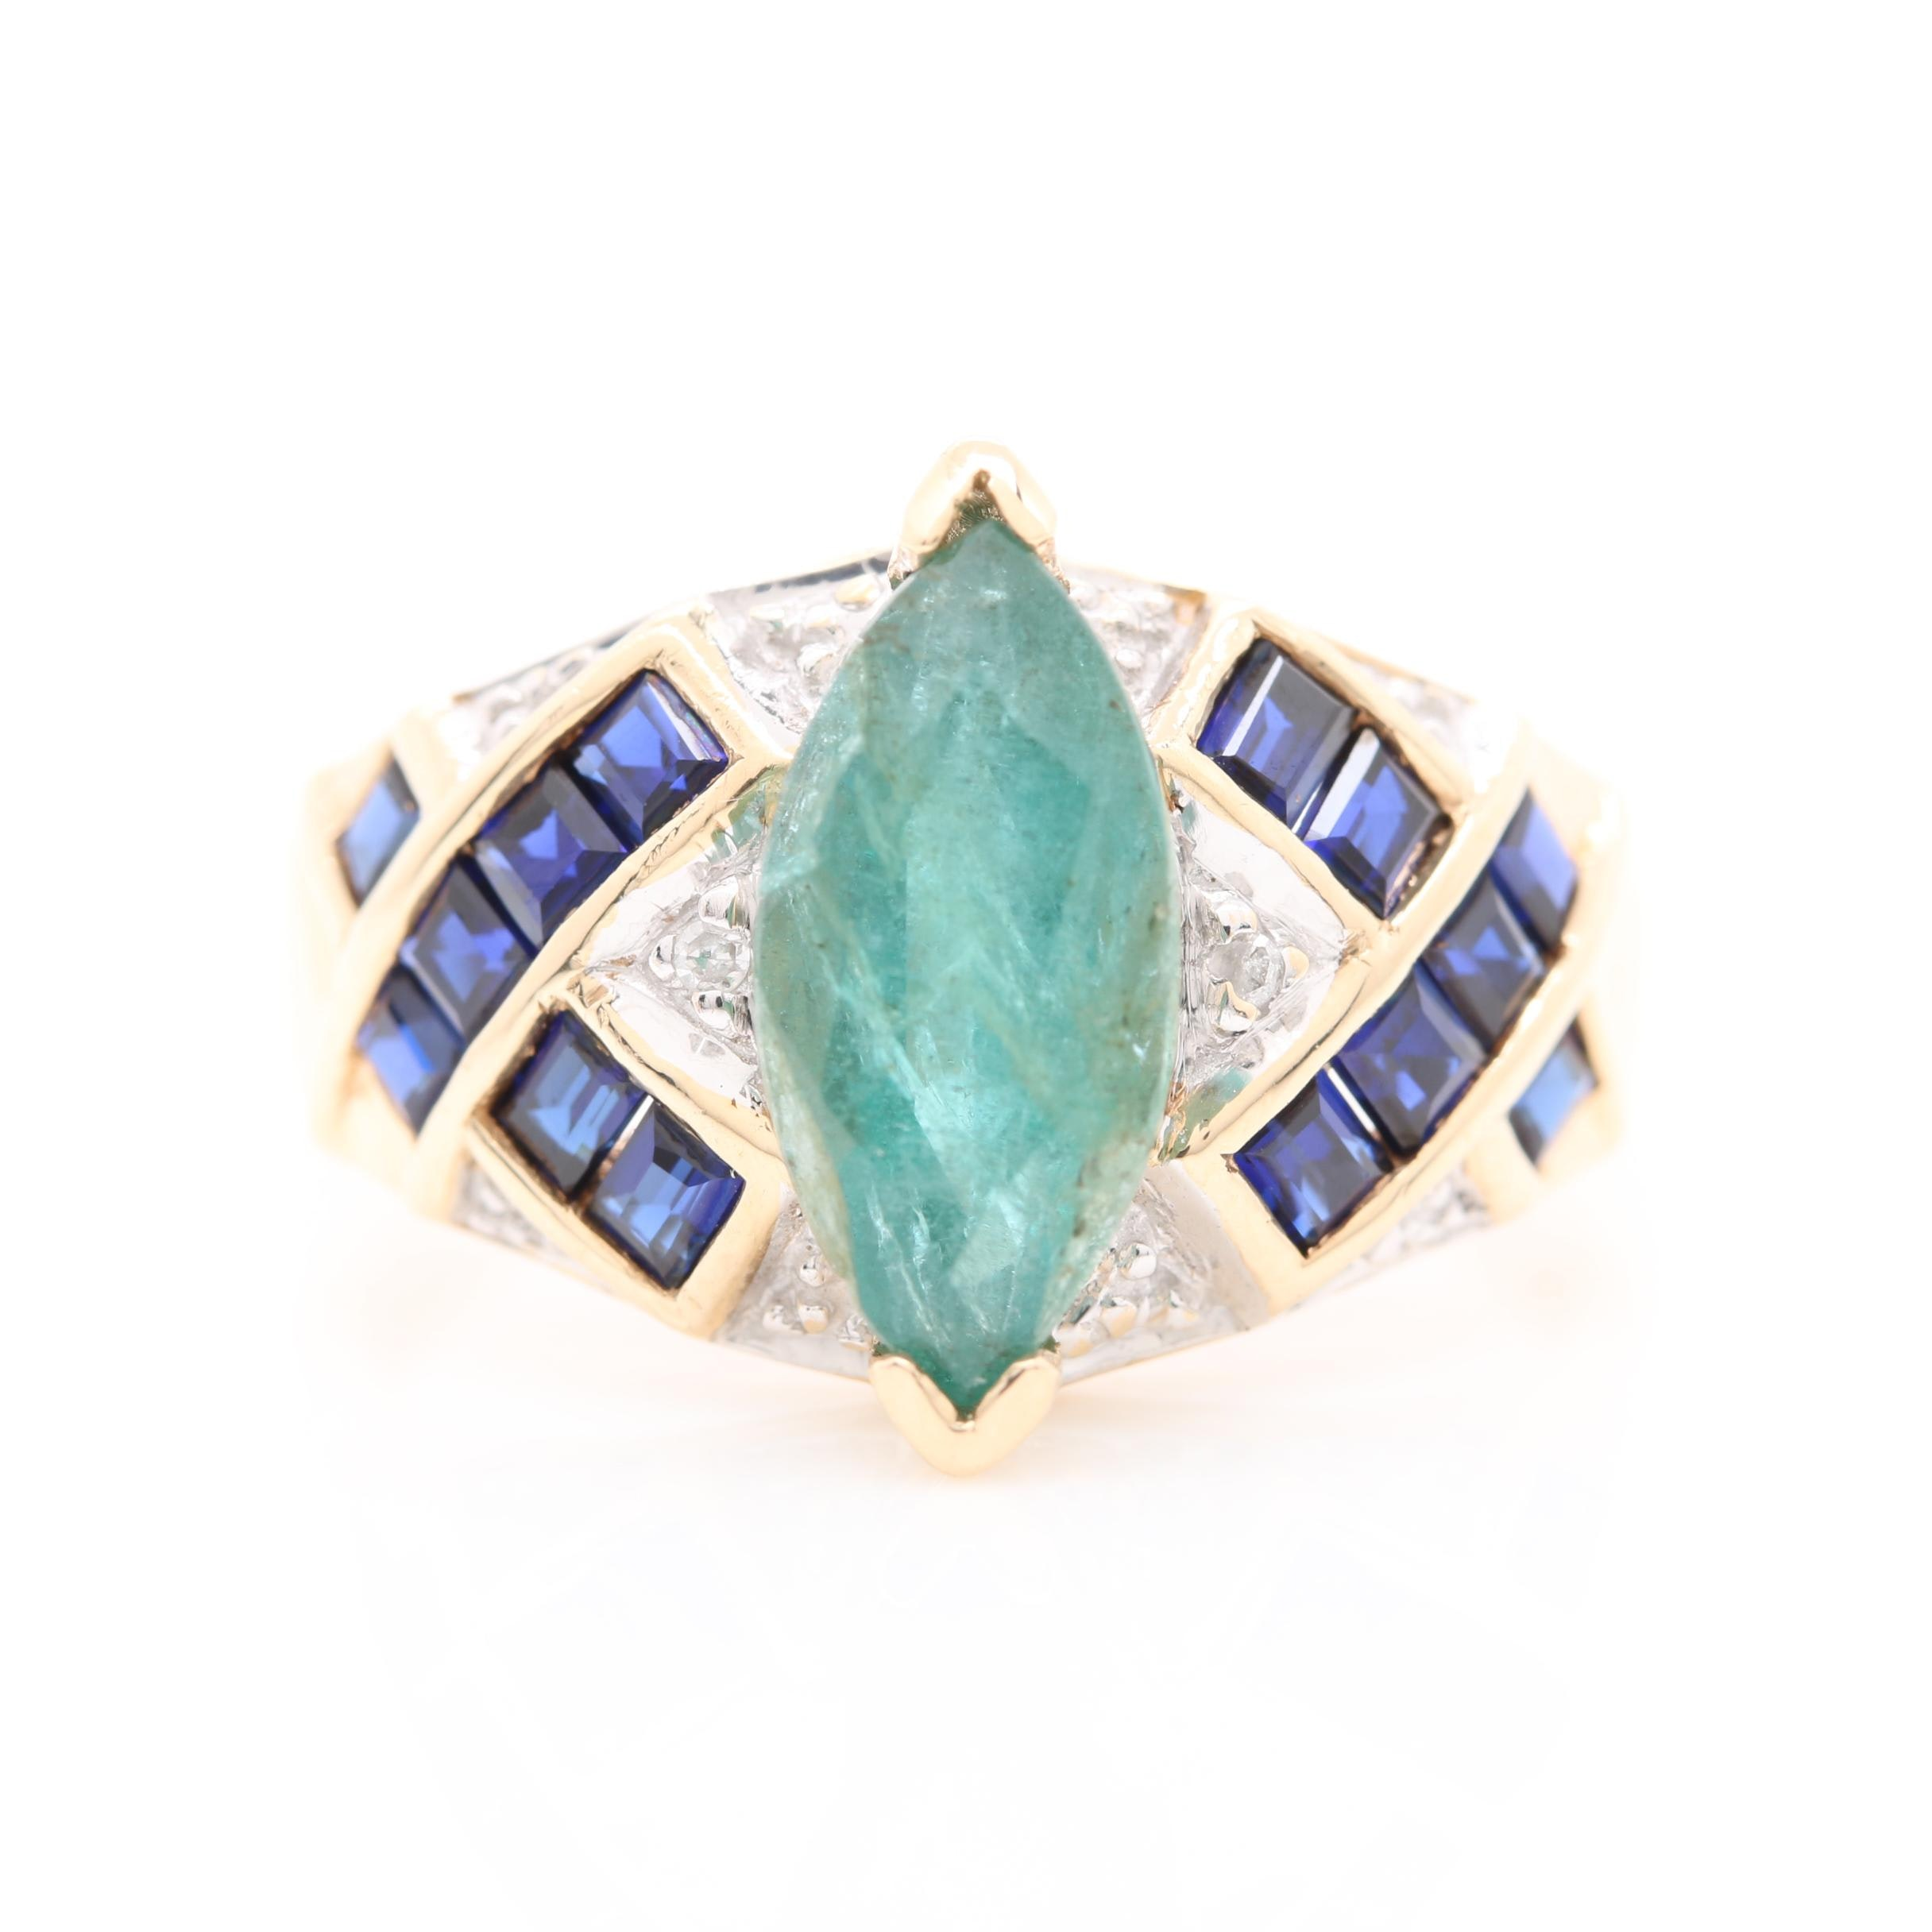 10K Yellow Gold Emerald, Diamond, and Synthetic Sapphire Ring